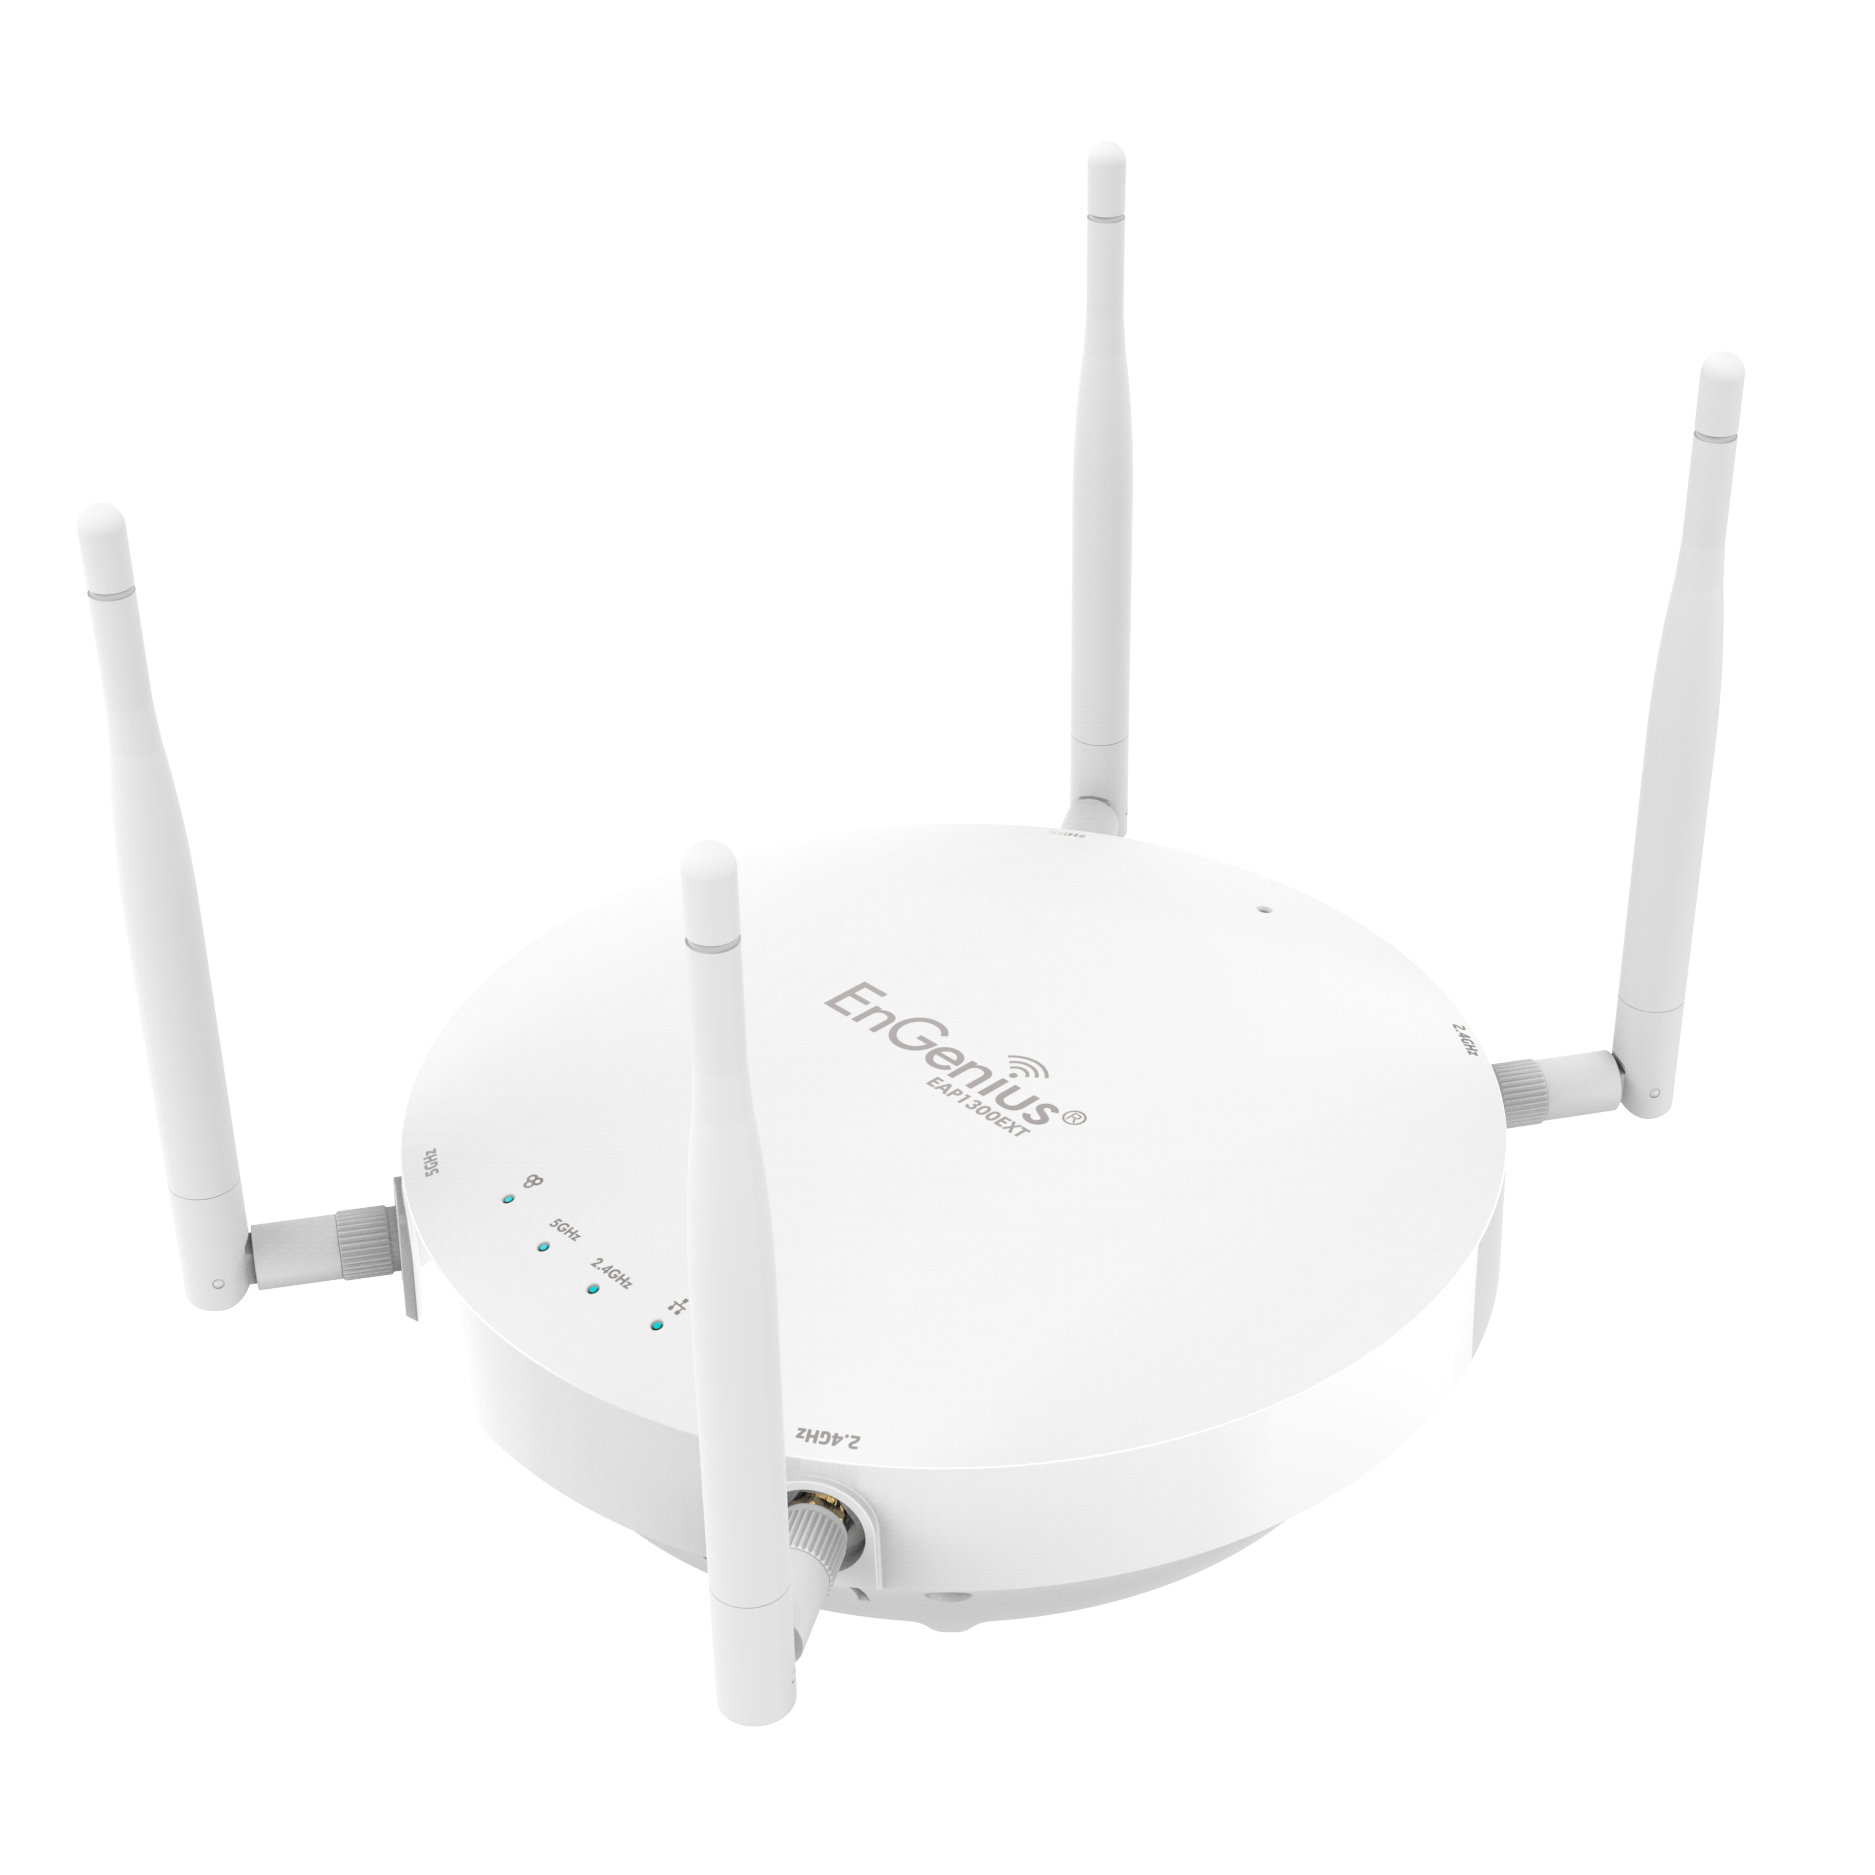 Wireless Repeater / Booster / Extender